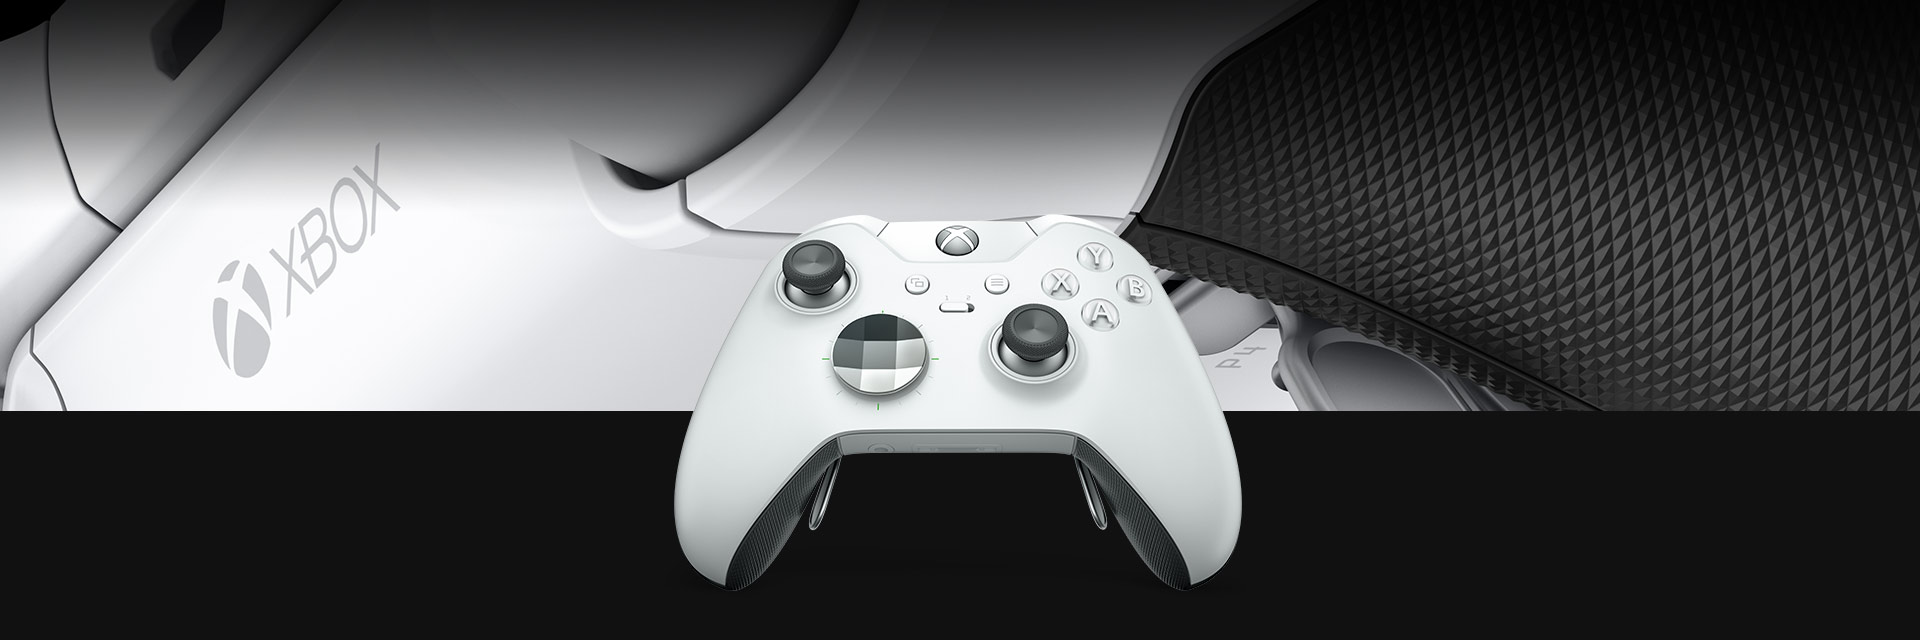 Xbox One White Elite Wireless Controller von vorn